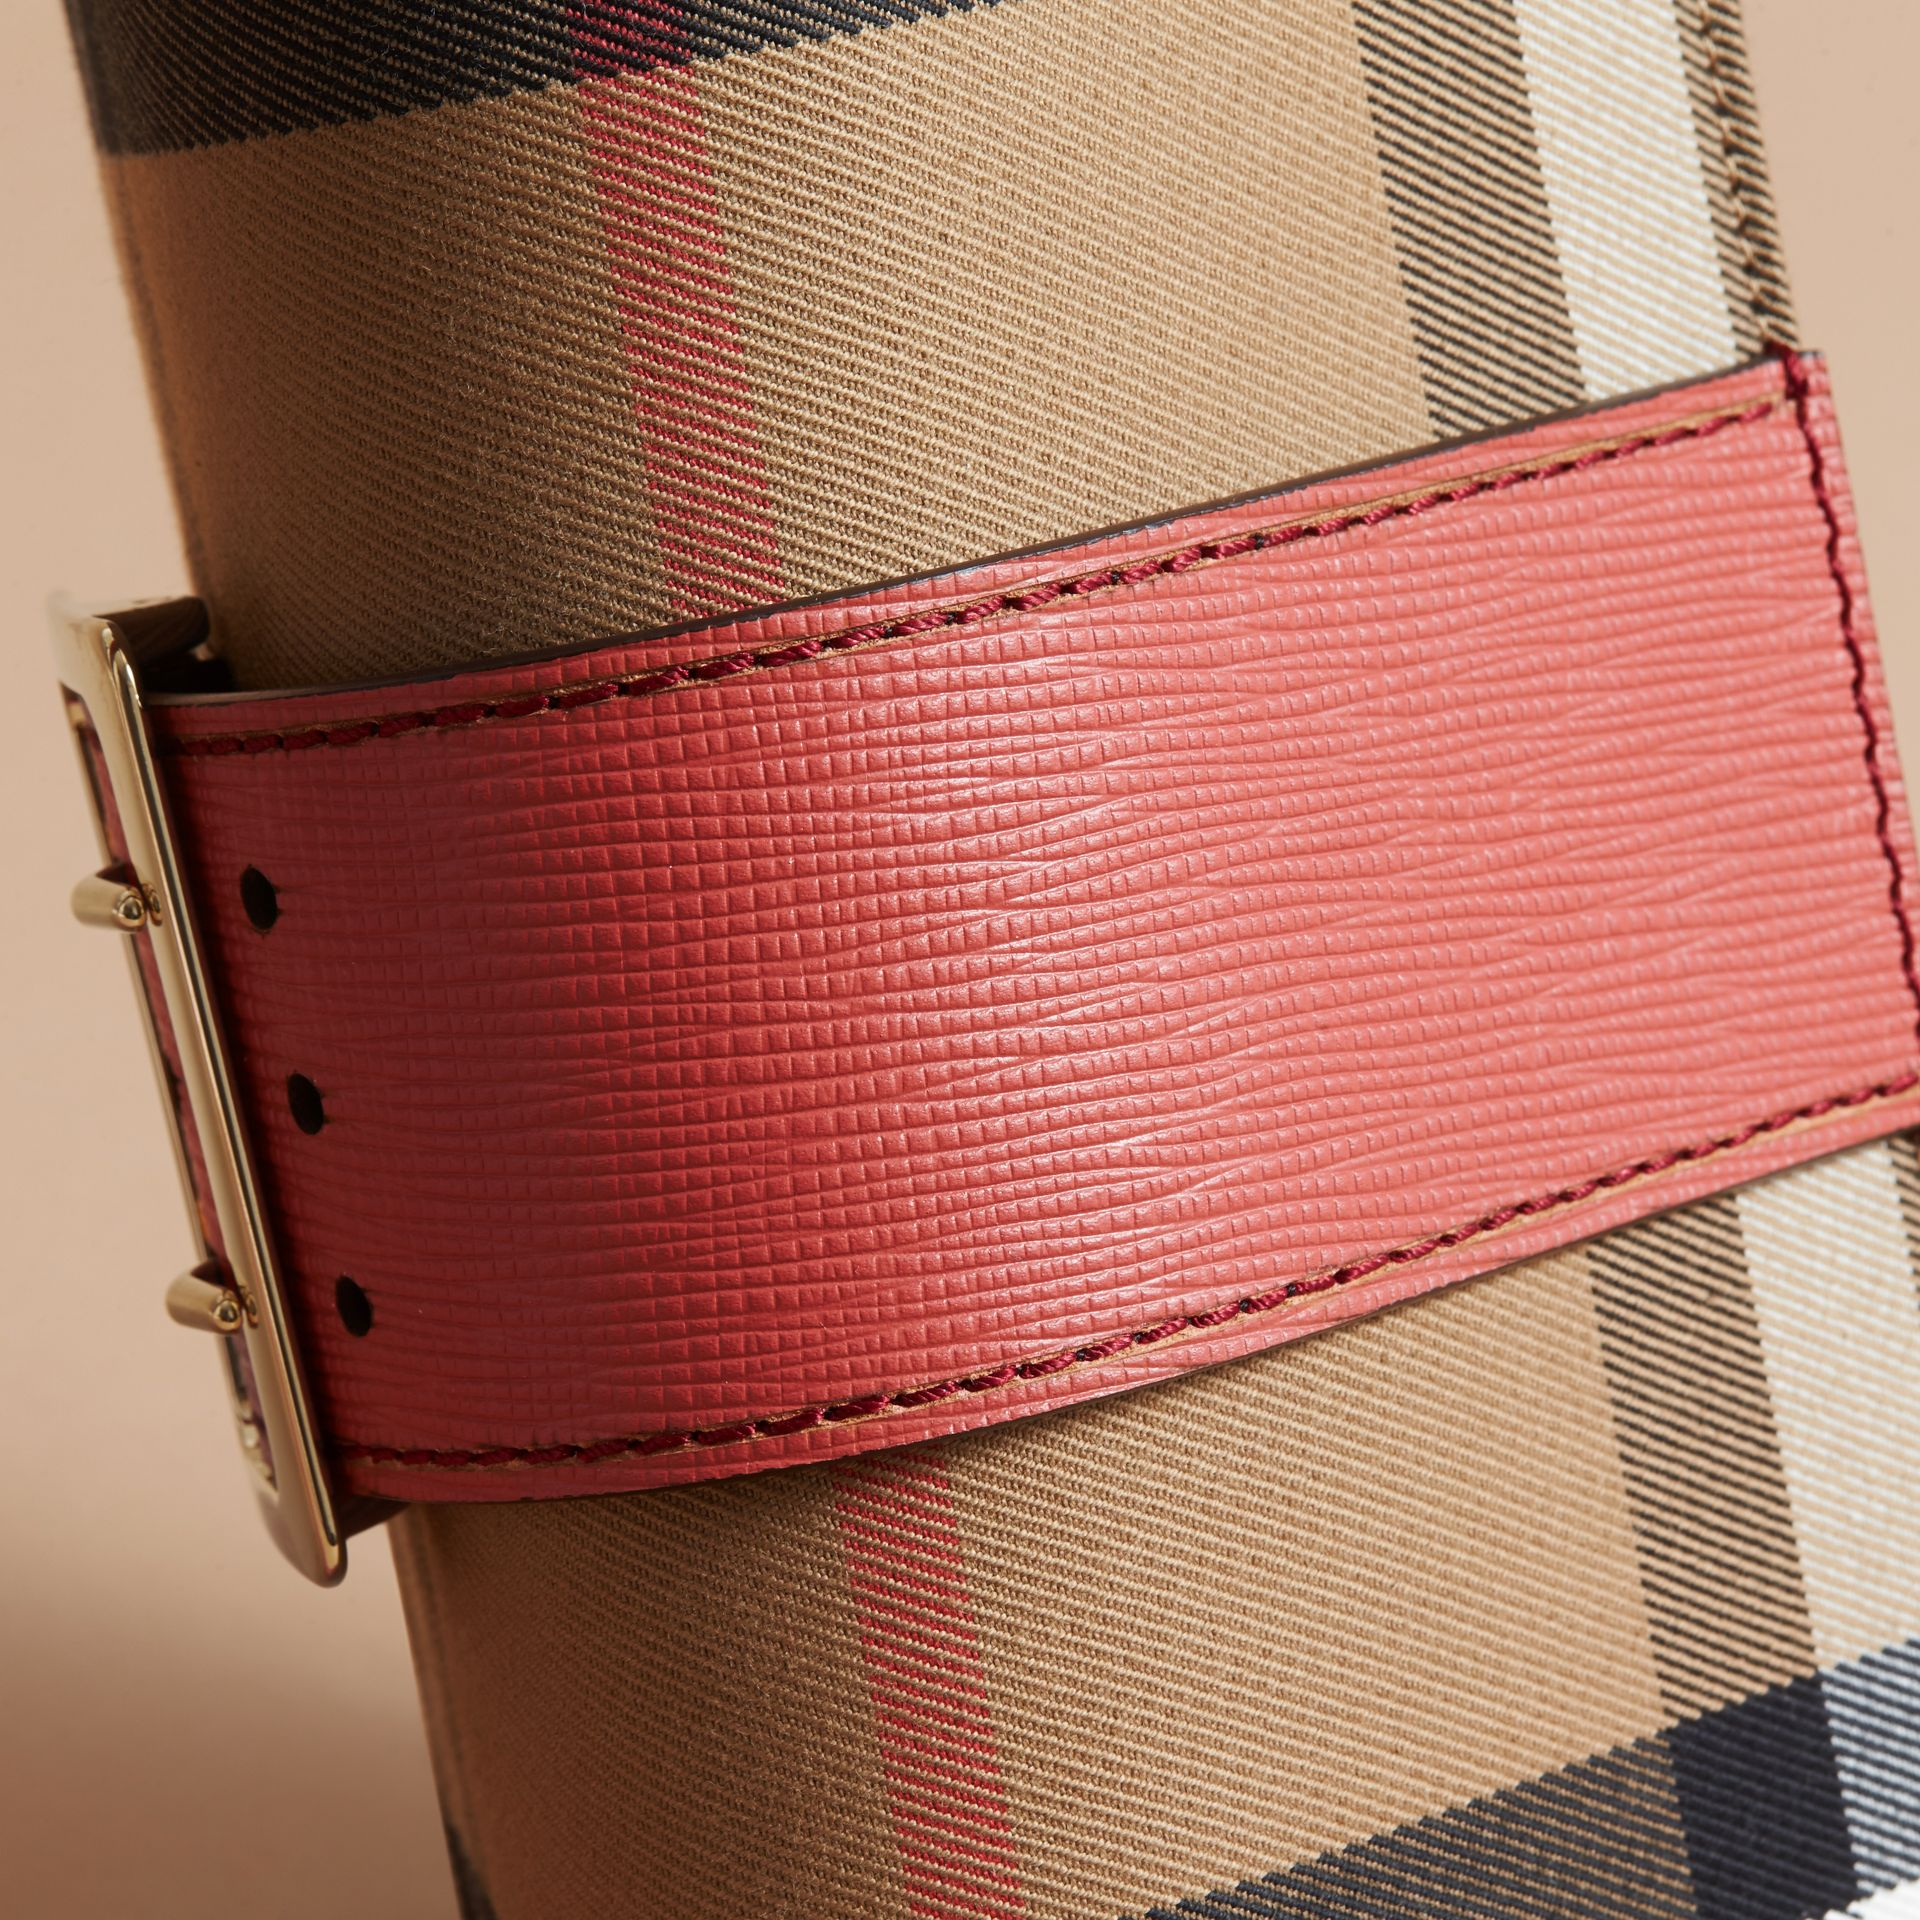 The Small Buckle Bag in House Check and Leather in Cinnamon Red - Women | Burberry Singapore - gallery image 6